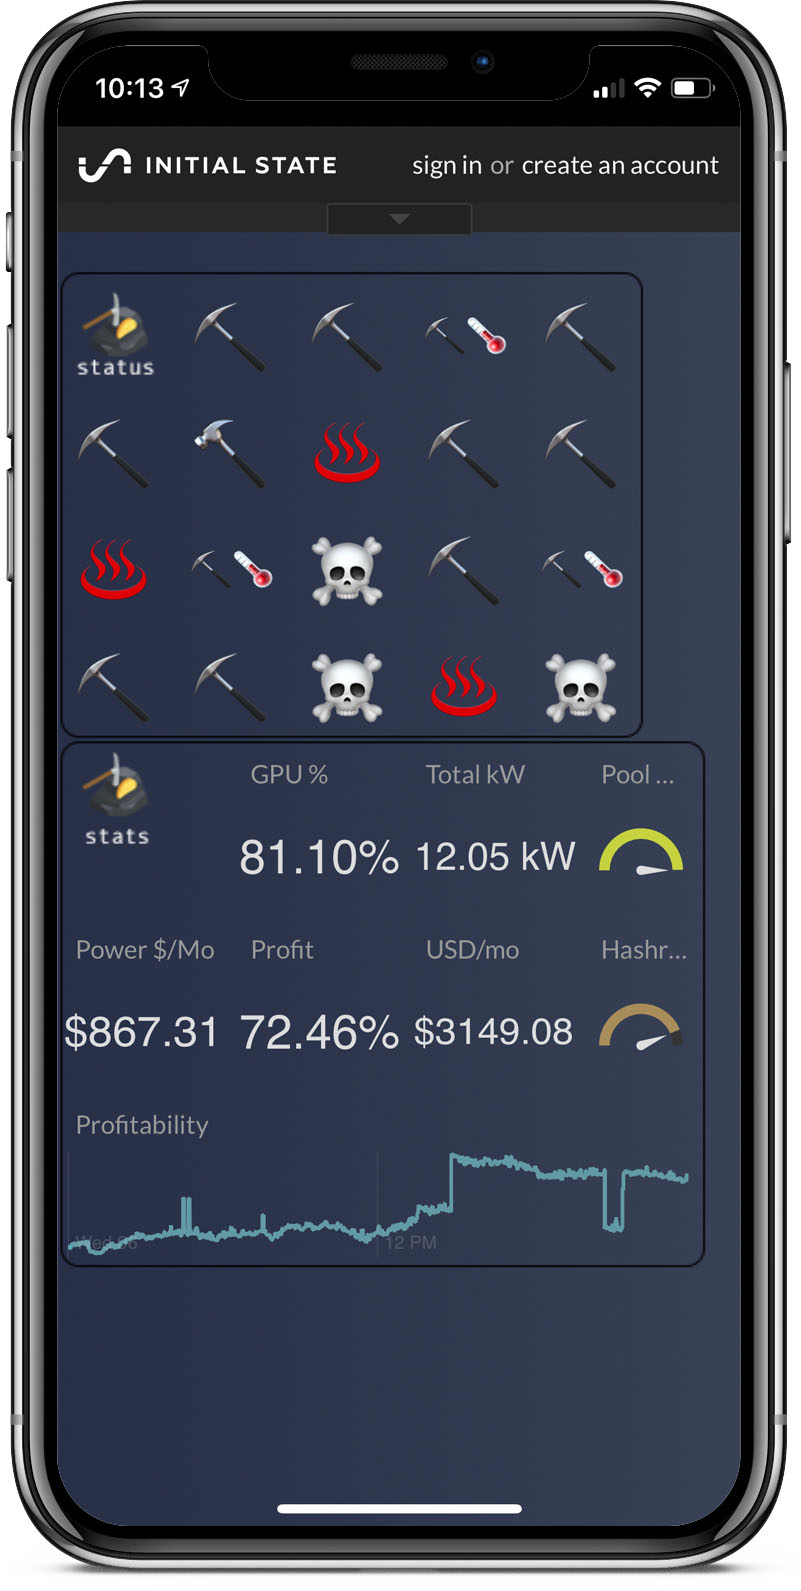 2019-08-19_Mobile_Dashboard_-_Crypto.jpg